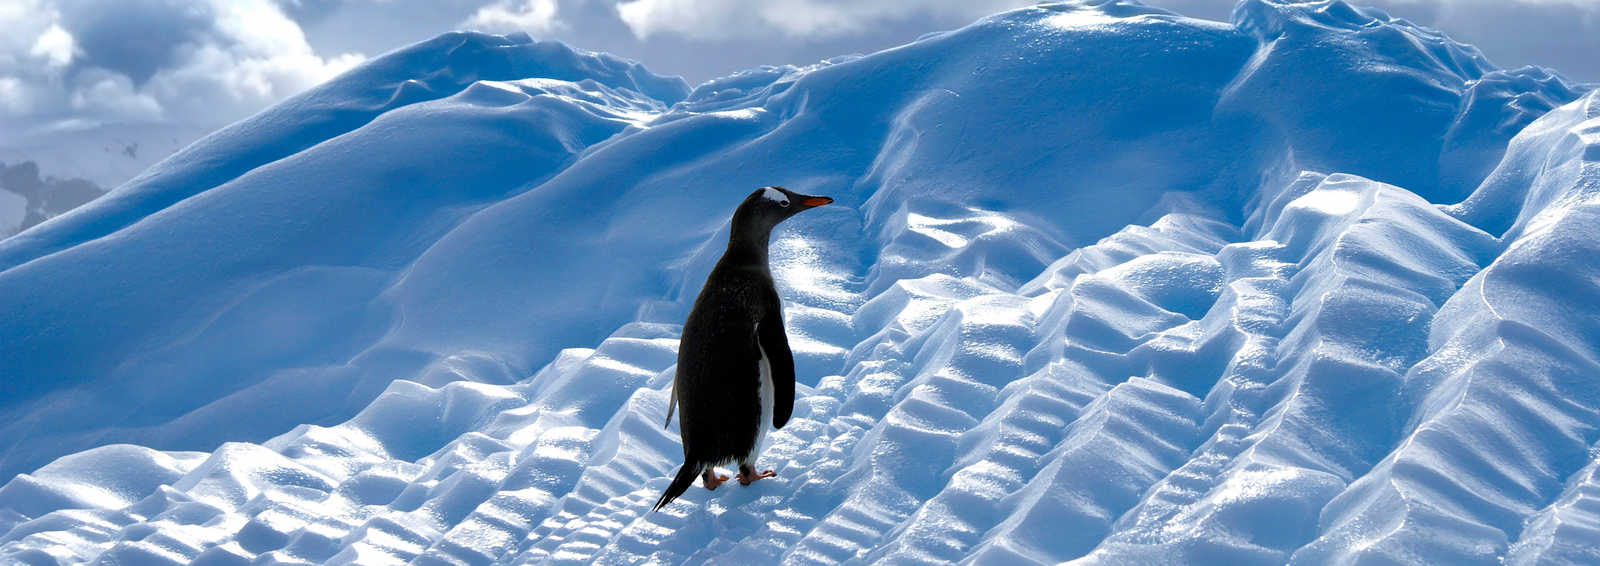 Gentoo penguin on ice